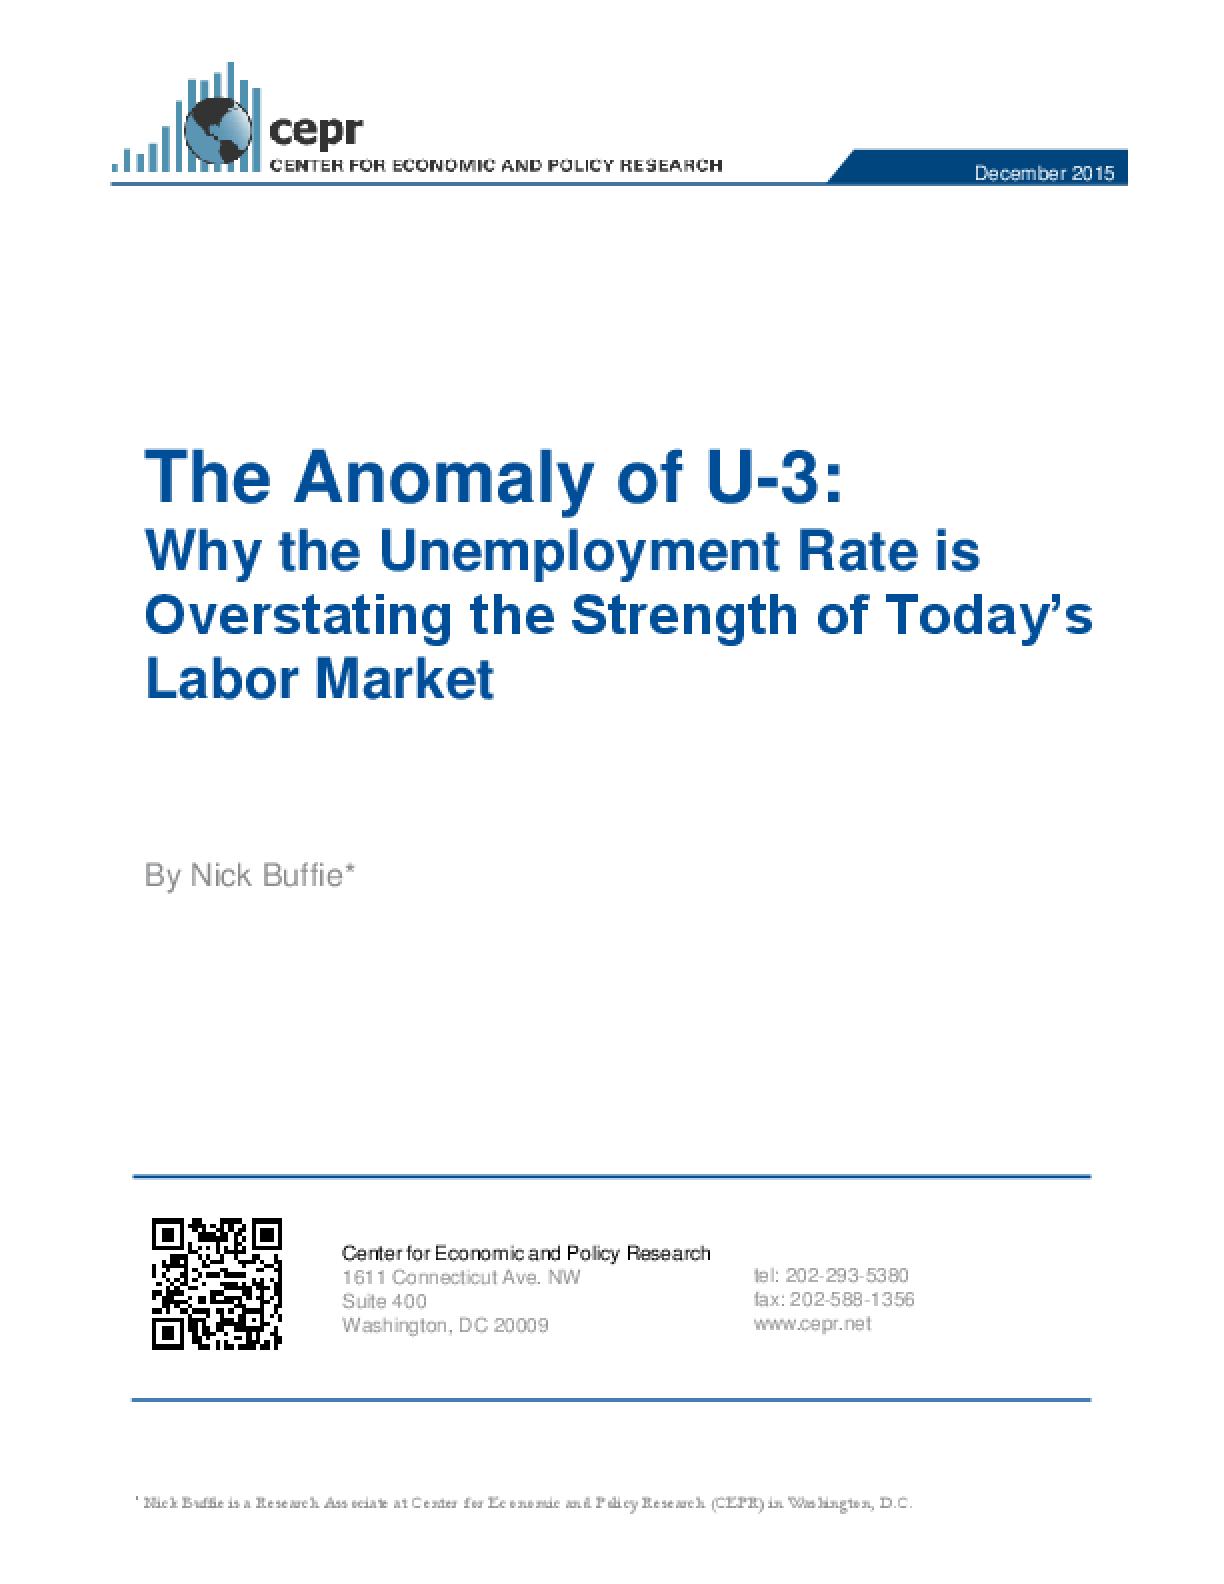 The Anomaly of U-3: Why the Unemployment Rate is Overstating the Strength of Today's Labor Market